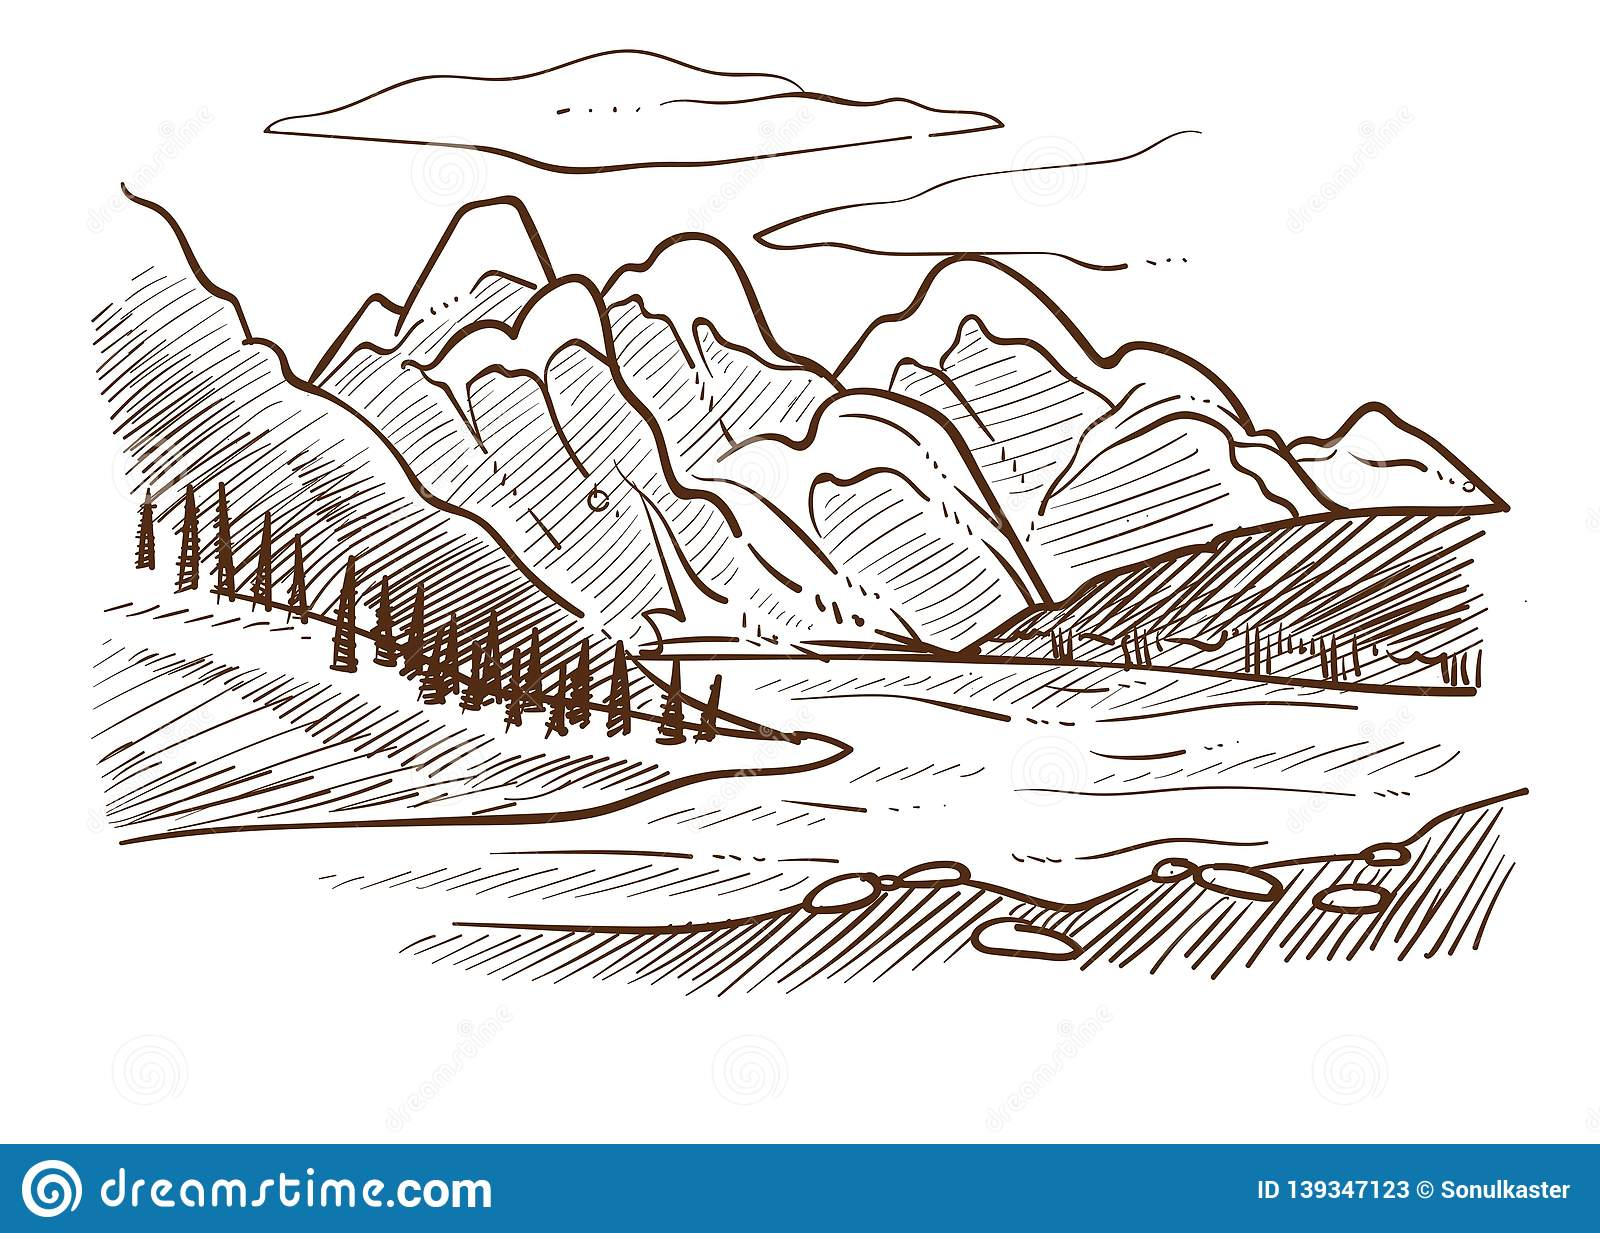 Landscape mountains and river forest and hills valley sketch vector wild nature rocks and trees water stones cloud in sky european view or scene pencil